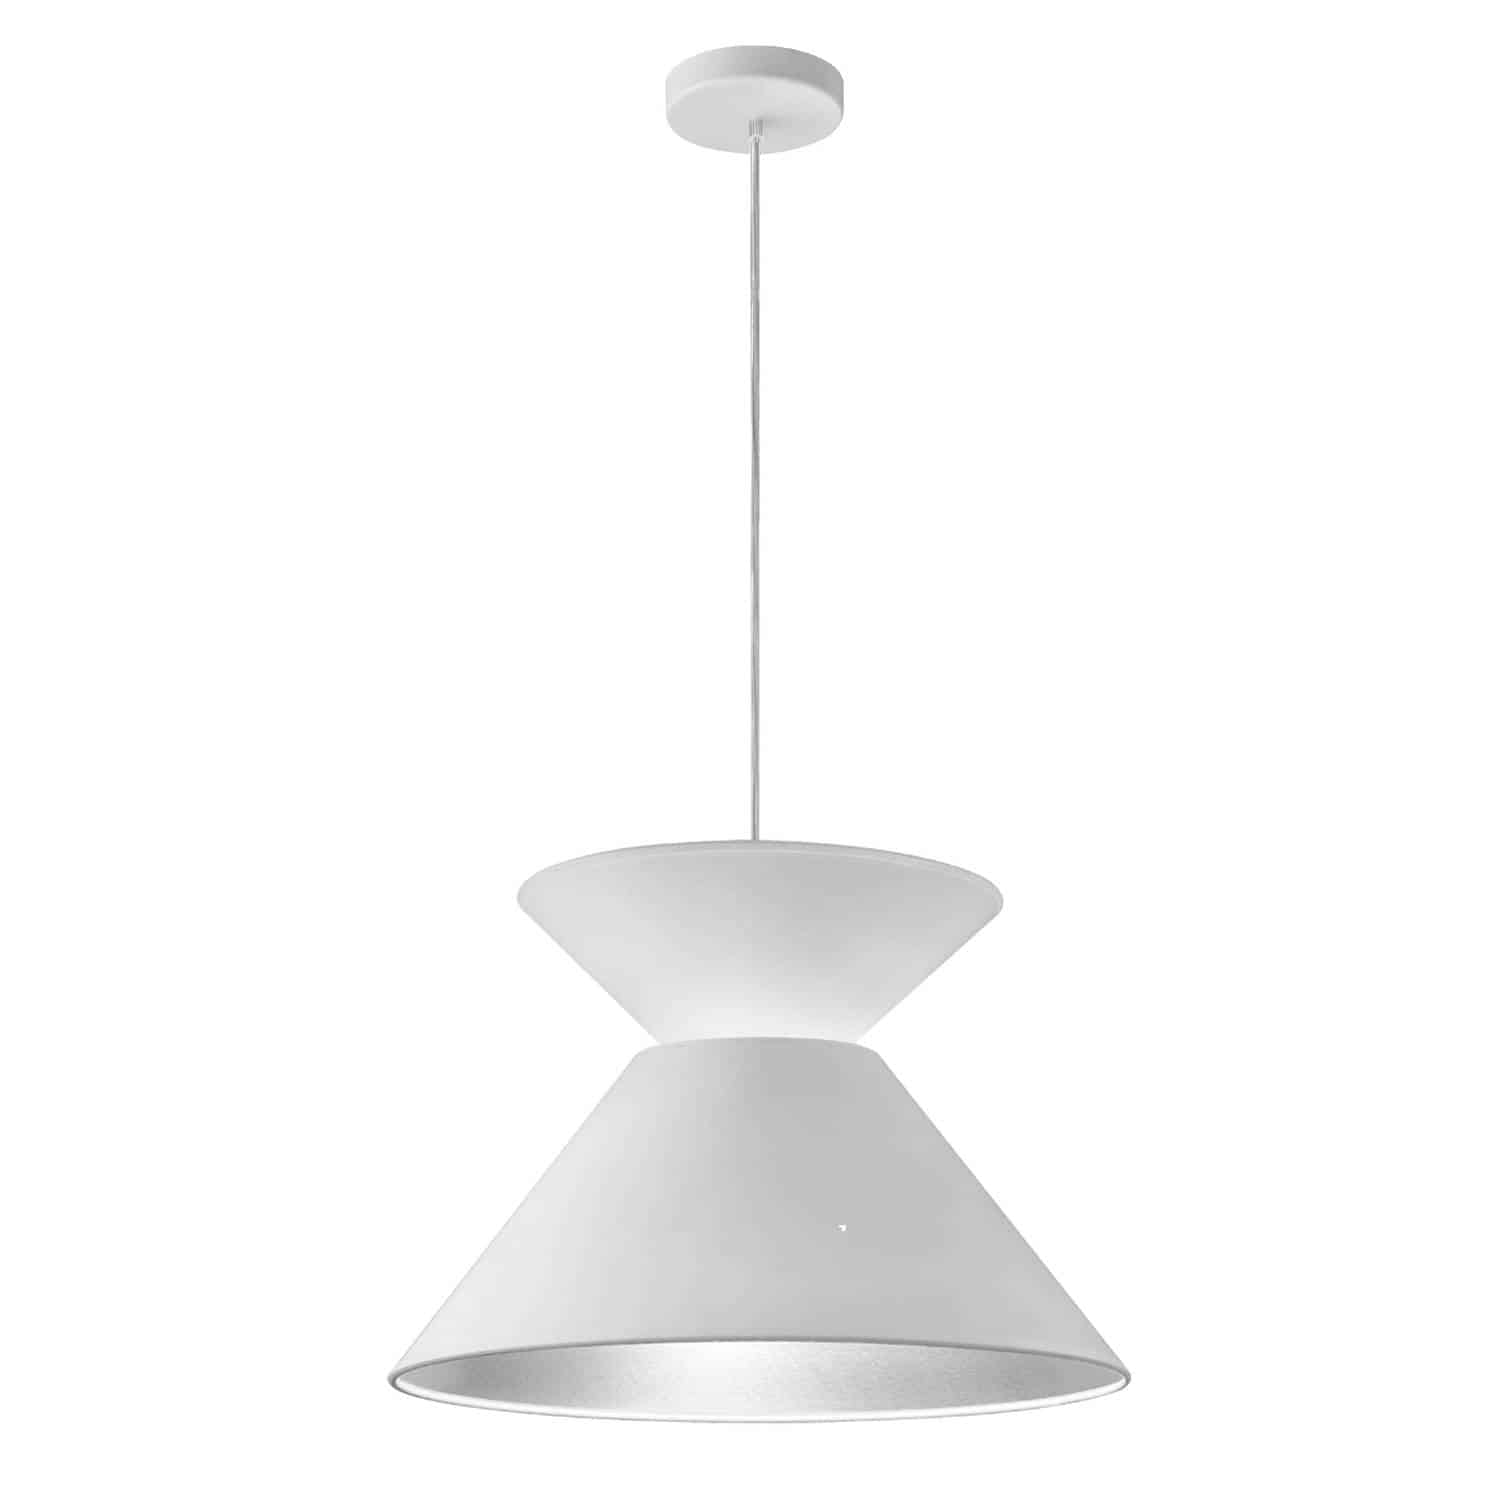 1 Light Patricia Pendant, White with White/Silver Shade